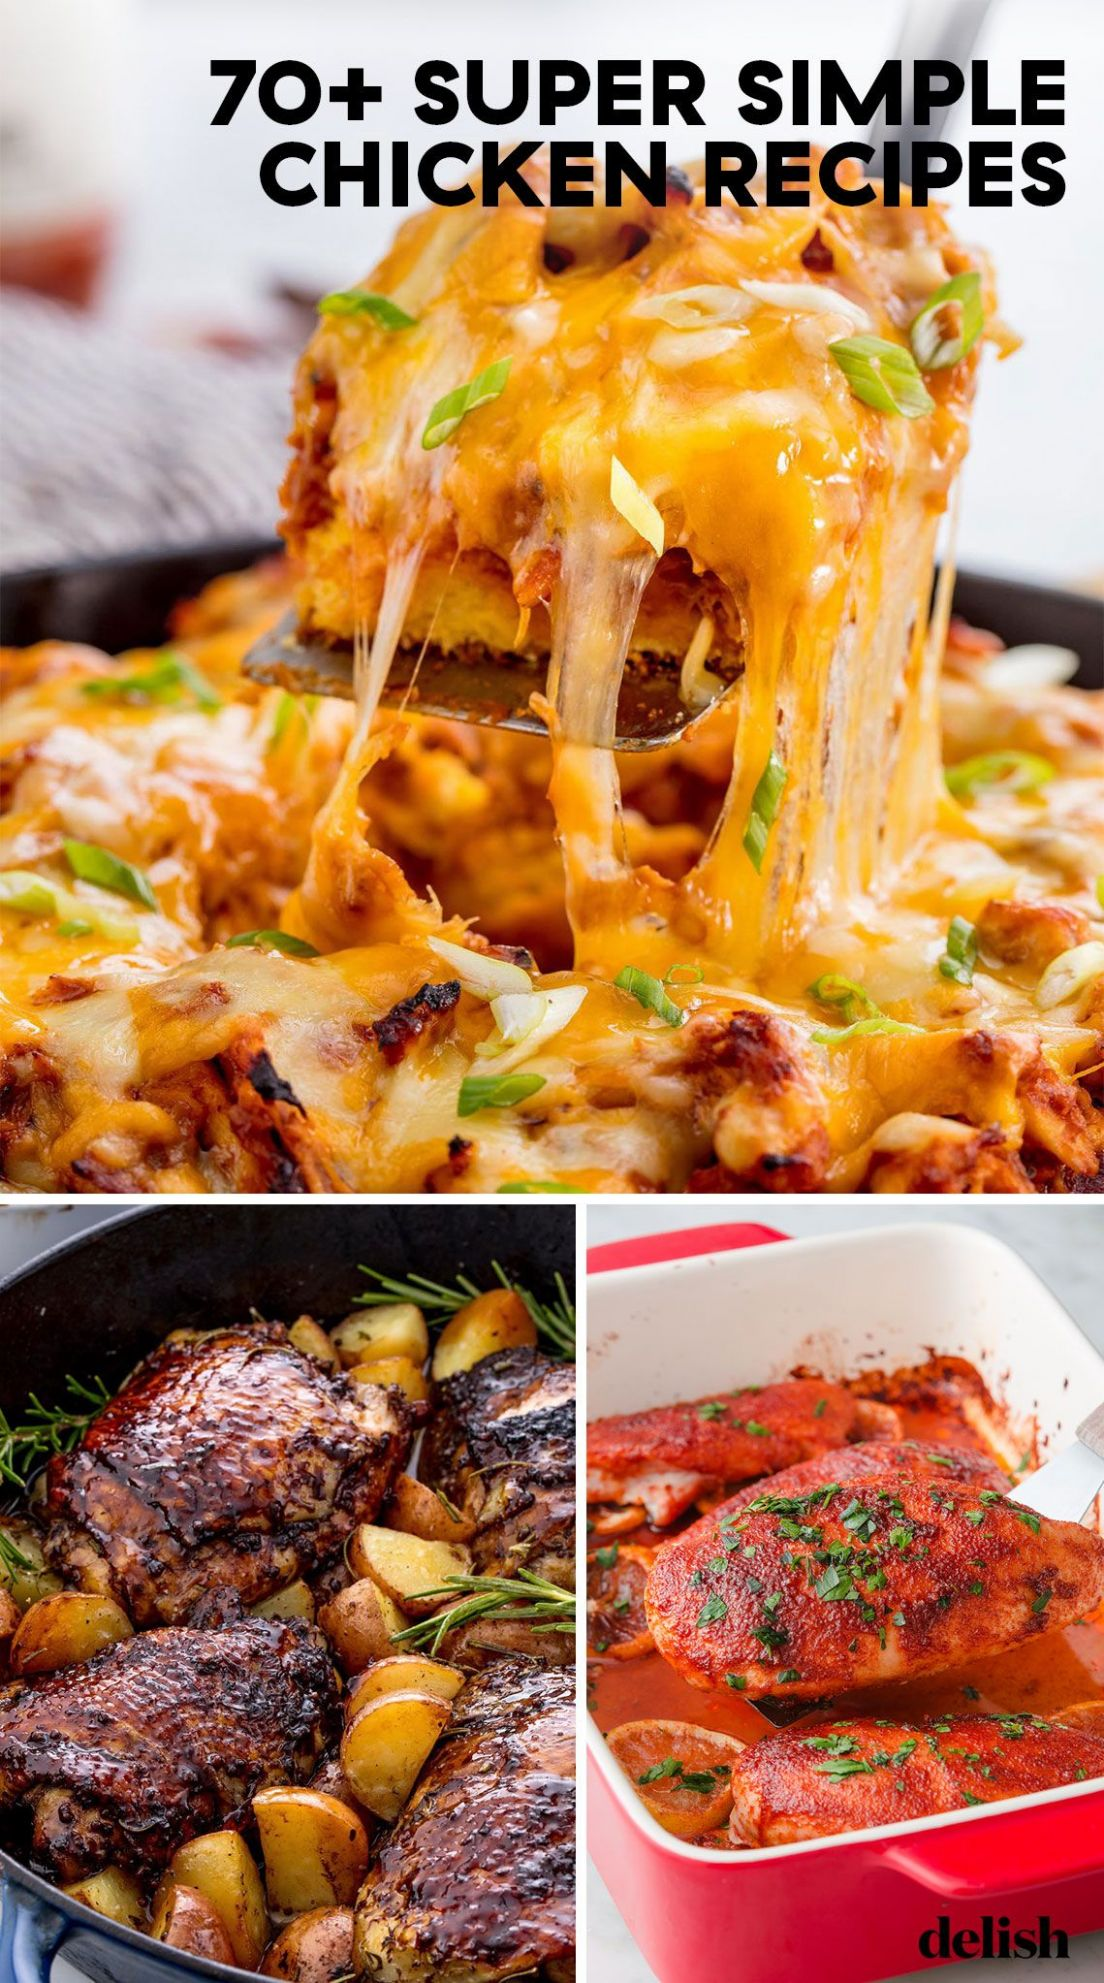 8+ Easy Chicken Dinner Recipes - Simple Ideas for Chicken Dishes - Recipes Chicken Dishes